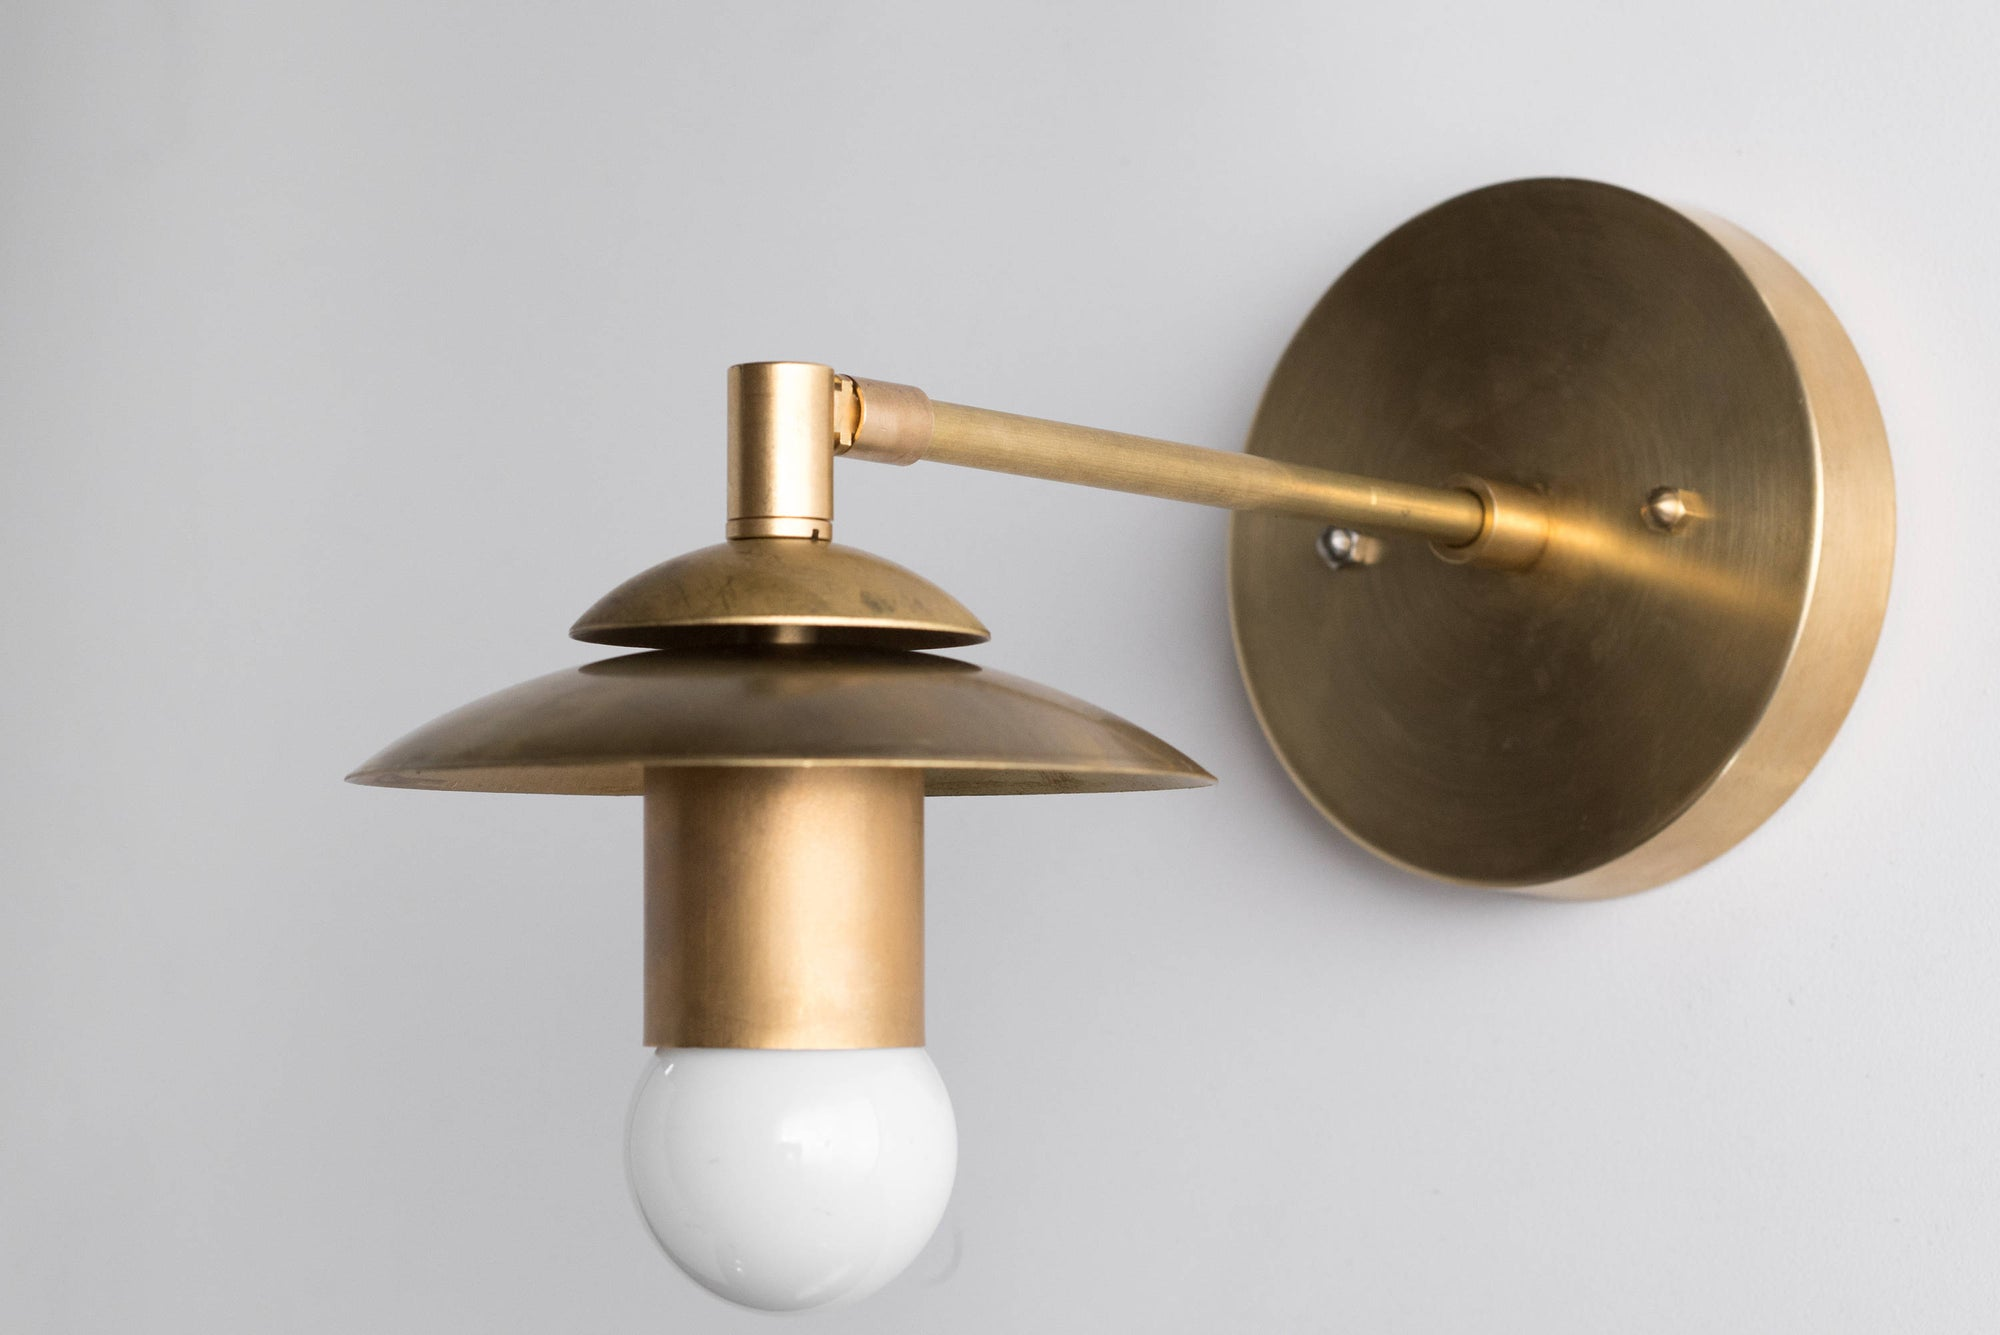 best service dd761 46fc4 Brass Sconce - Rustic Wall Sconce - Modern Wall Light - Gold Sconces - Mid  Century Sconce